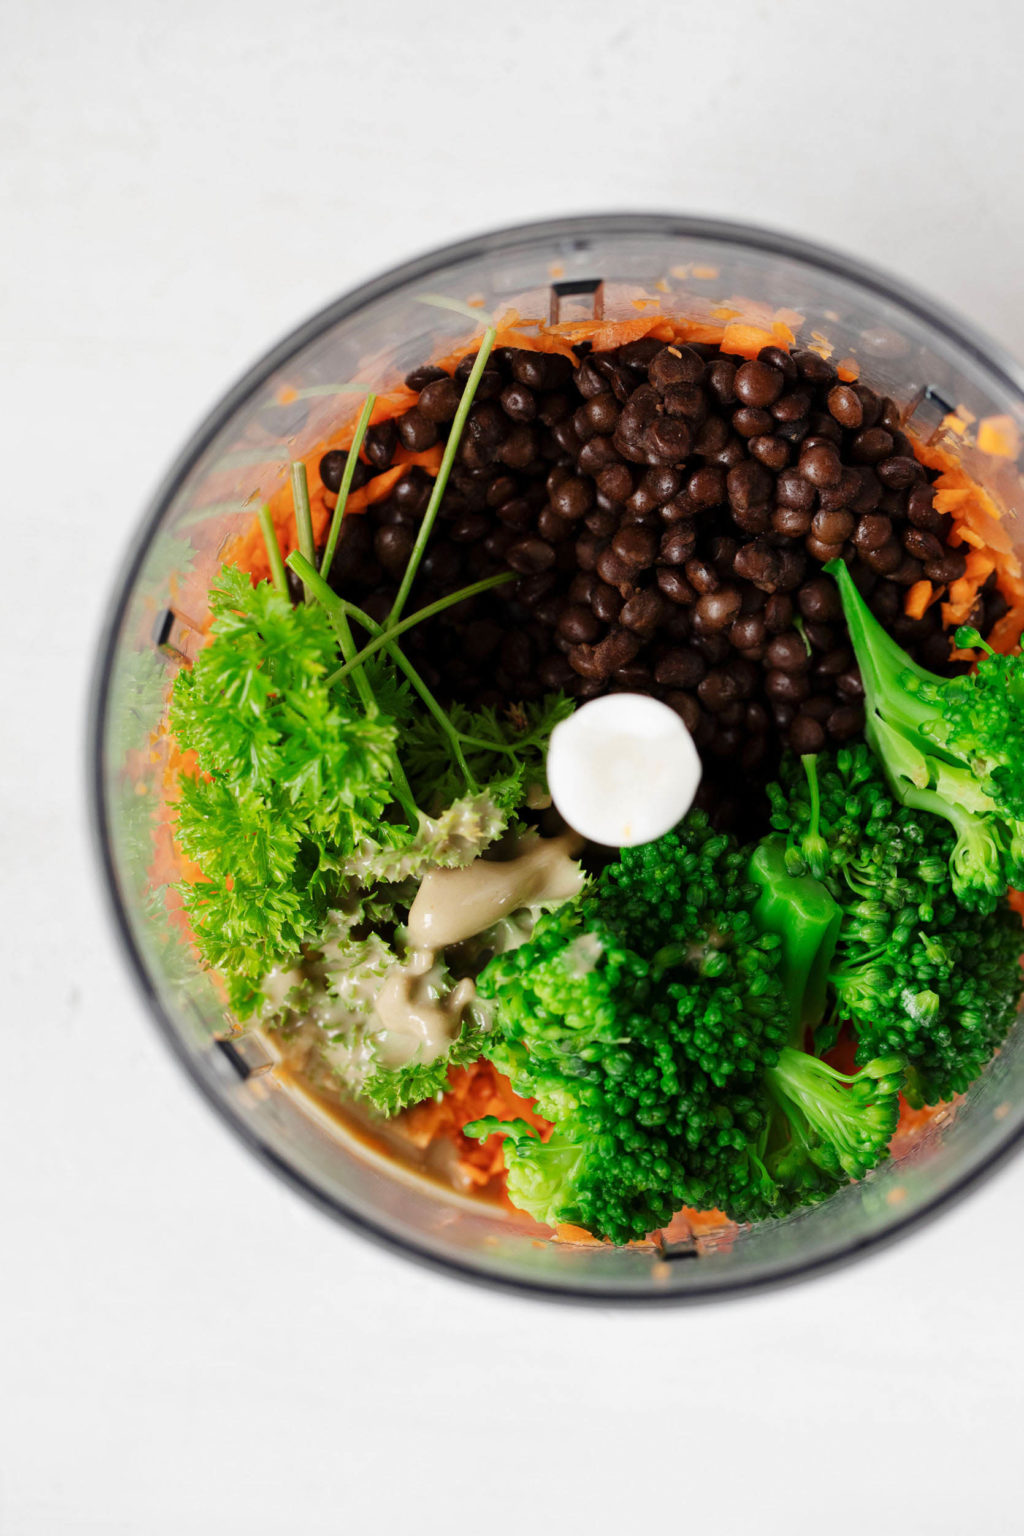 The bowl of a food processor is filled with lentils, broccoli, carrots, and herbs.